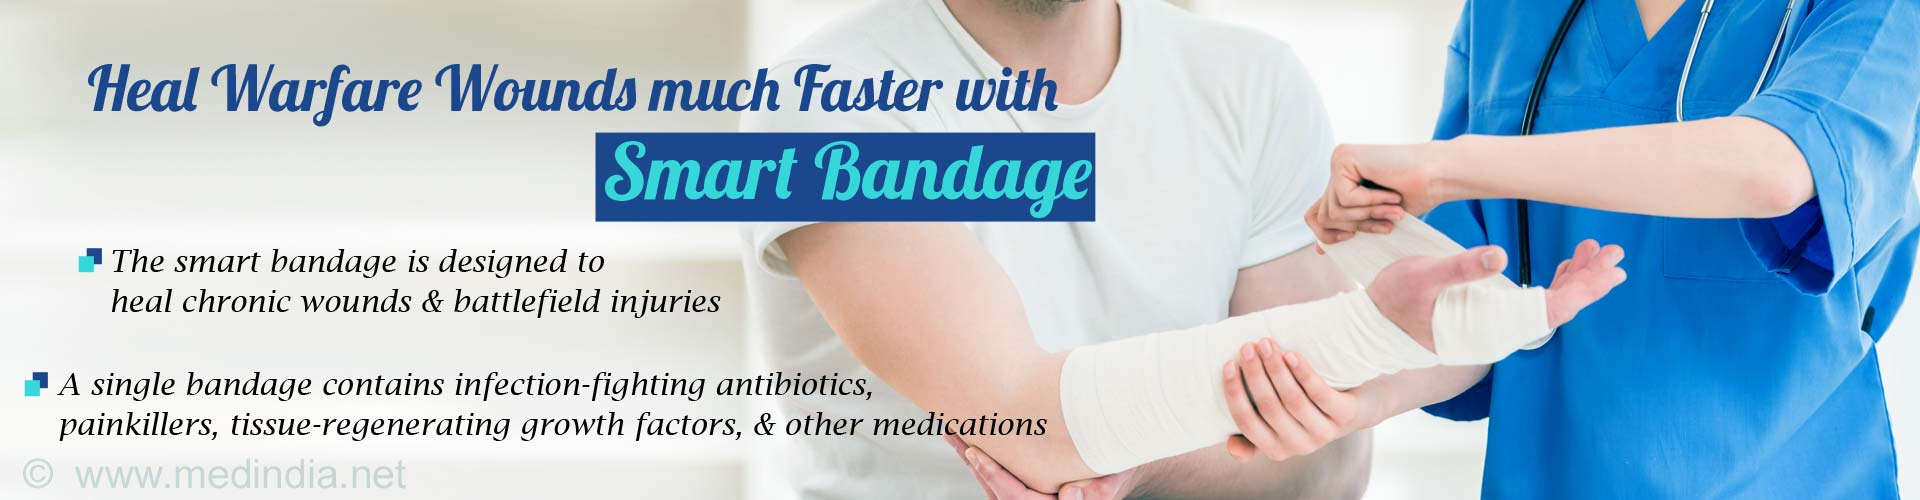 Heal Warfare Wounds much Faster with Smart Bandage